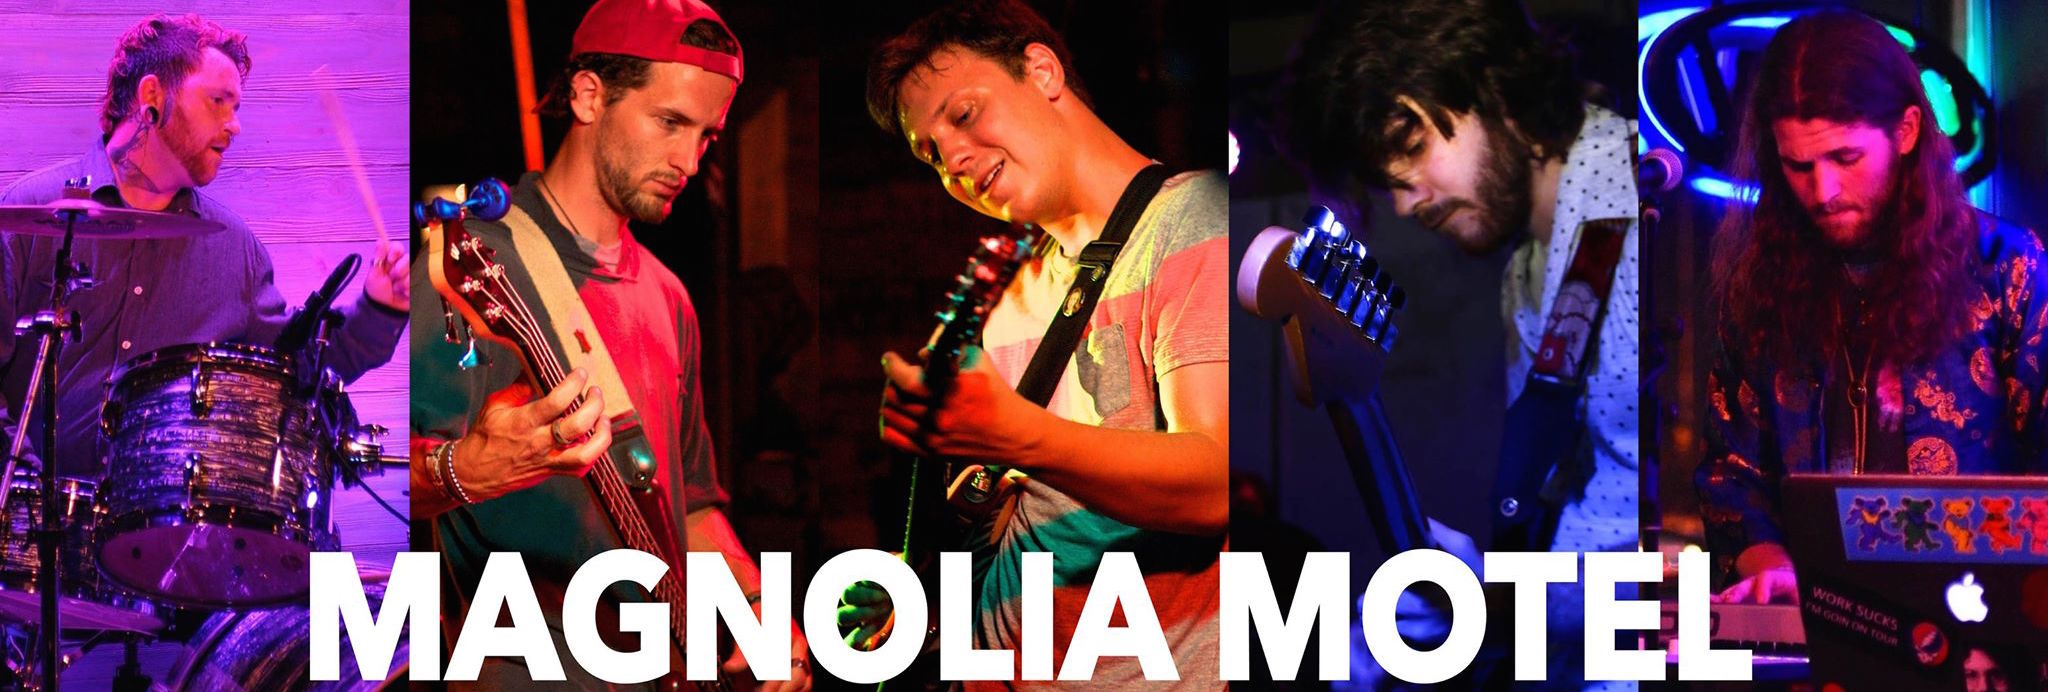 Click here to use your code for your FREE download Magnolia Motel's EP  Big Big World !